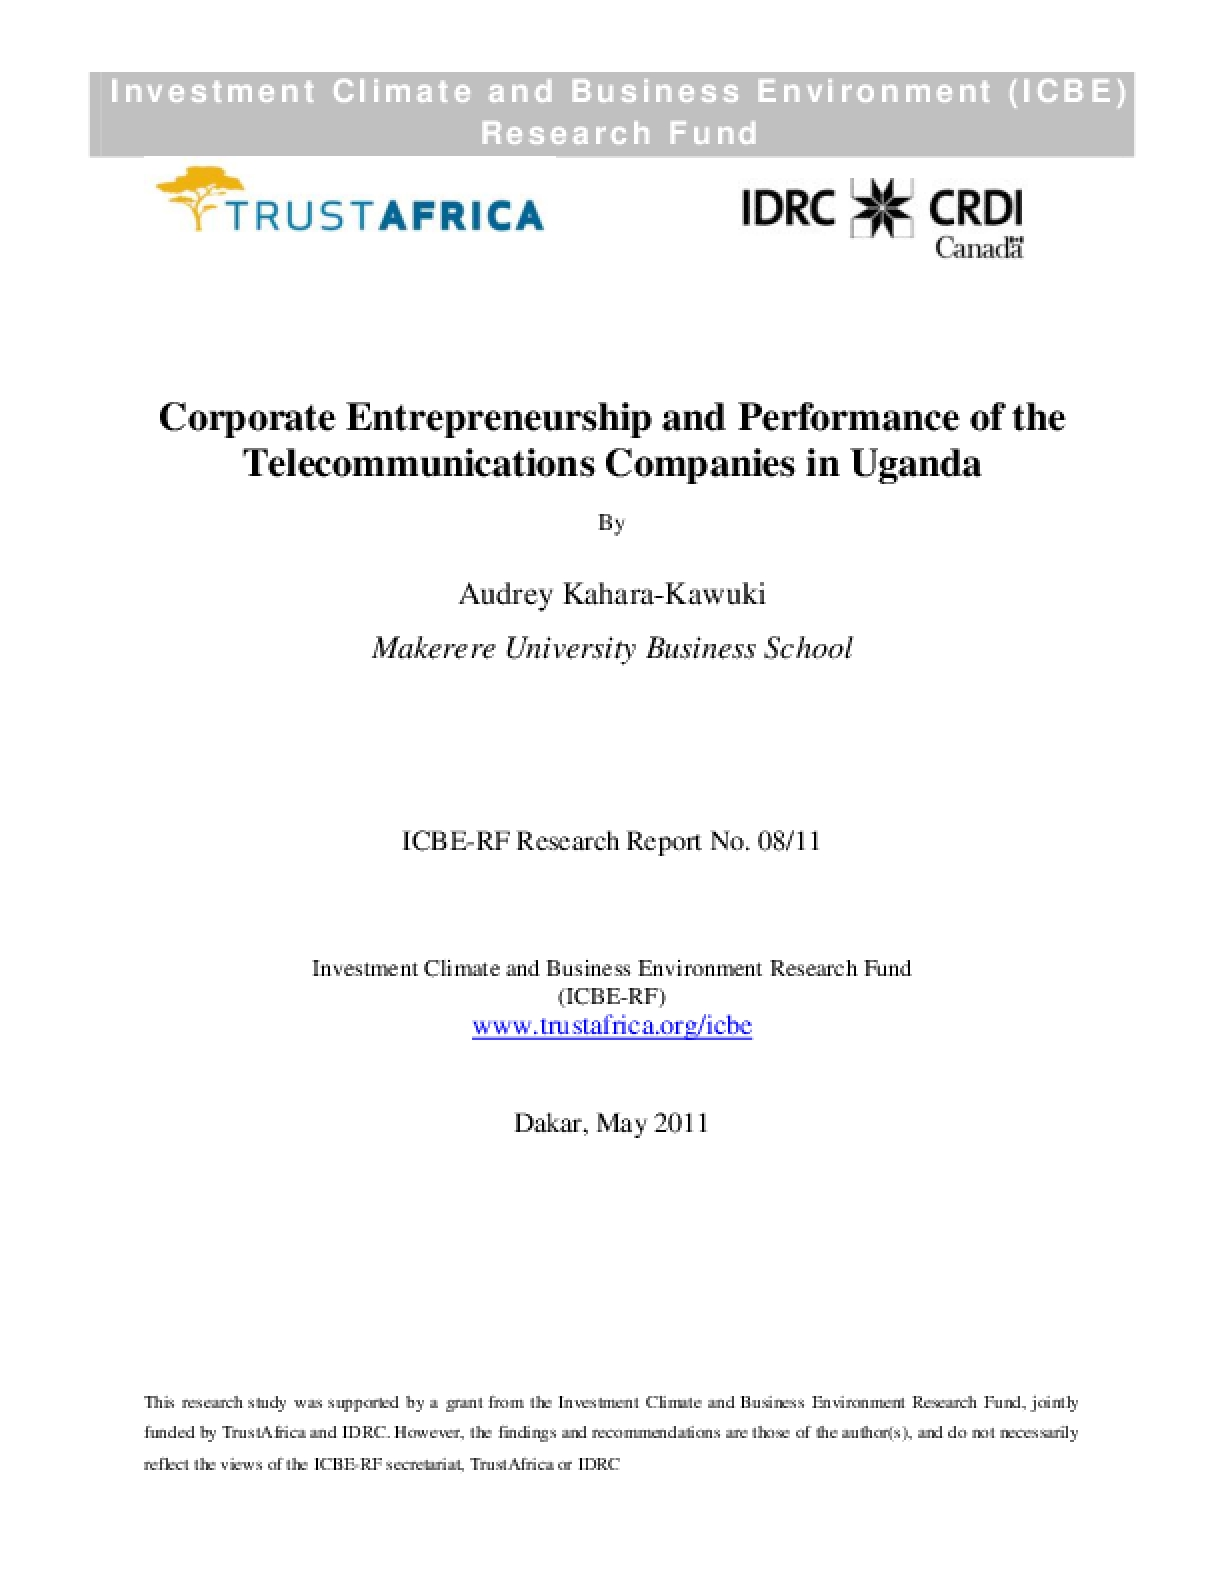 Corporate Entrepreneurship and Perfomance of the Telecommunications Companies in Uganda